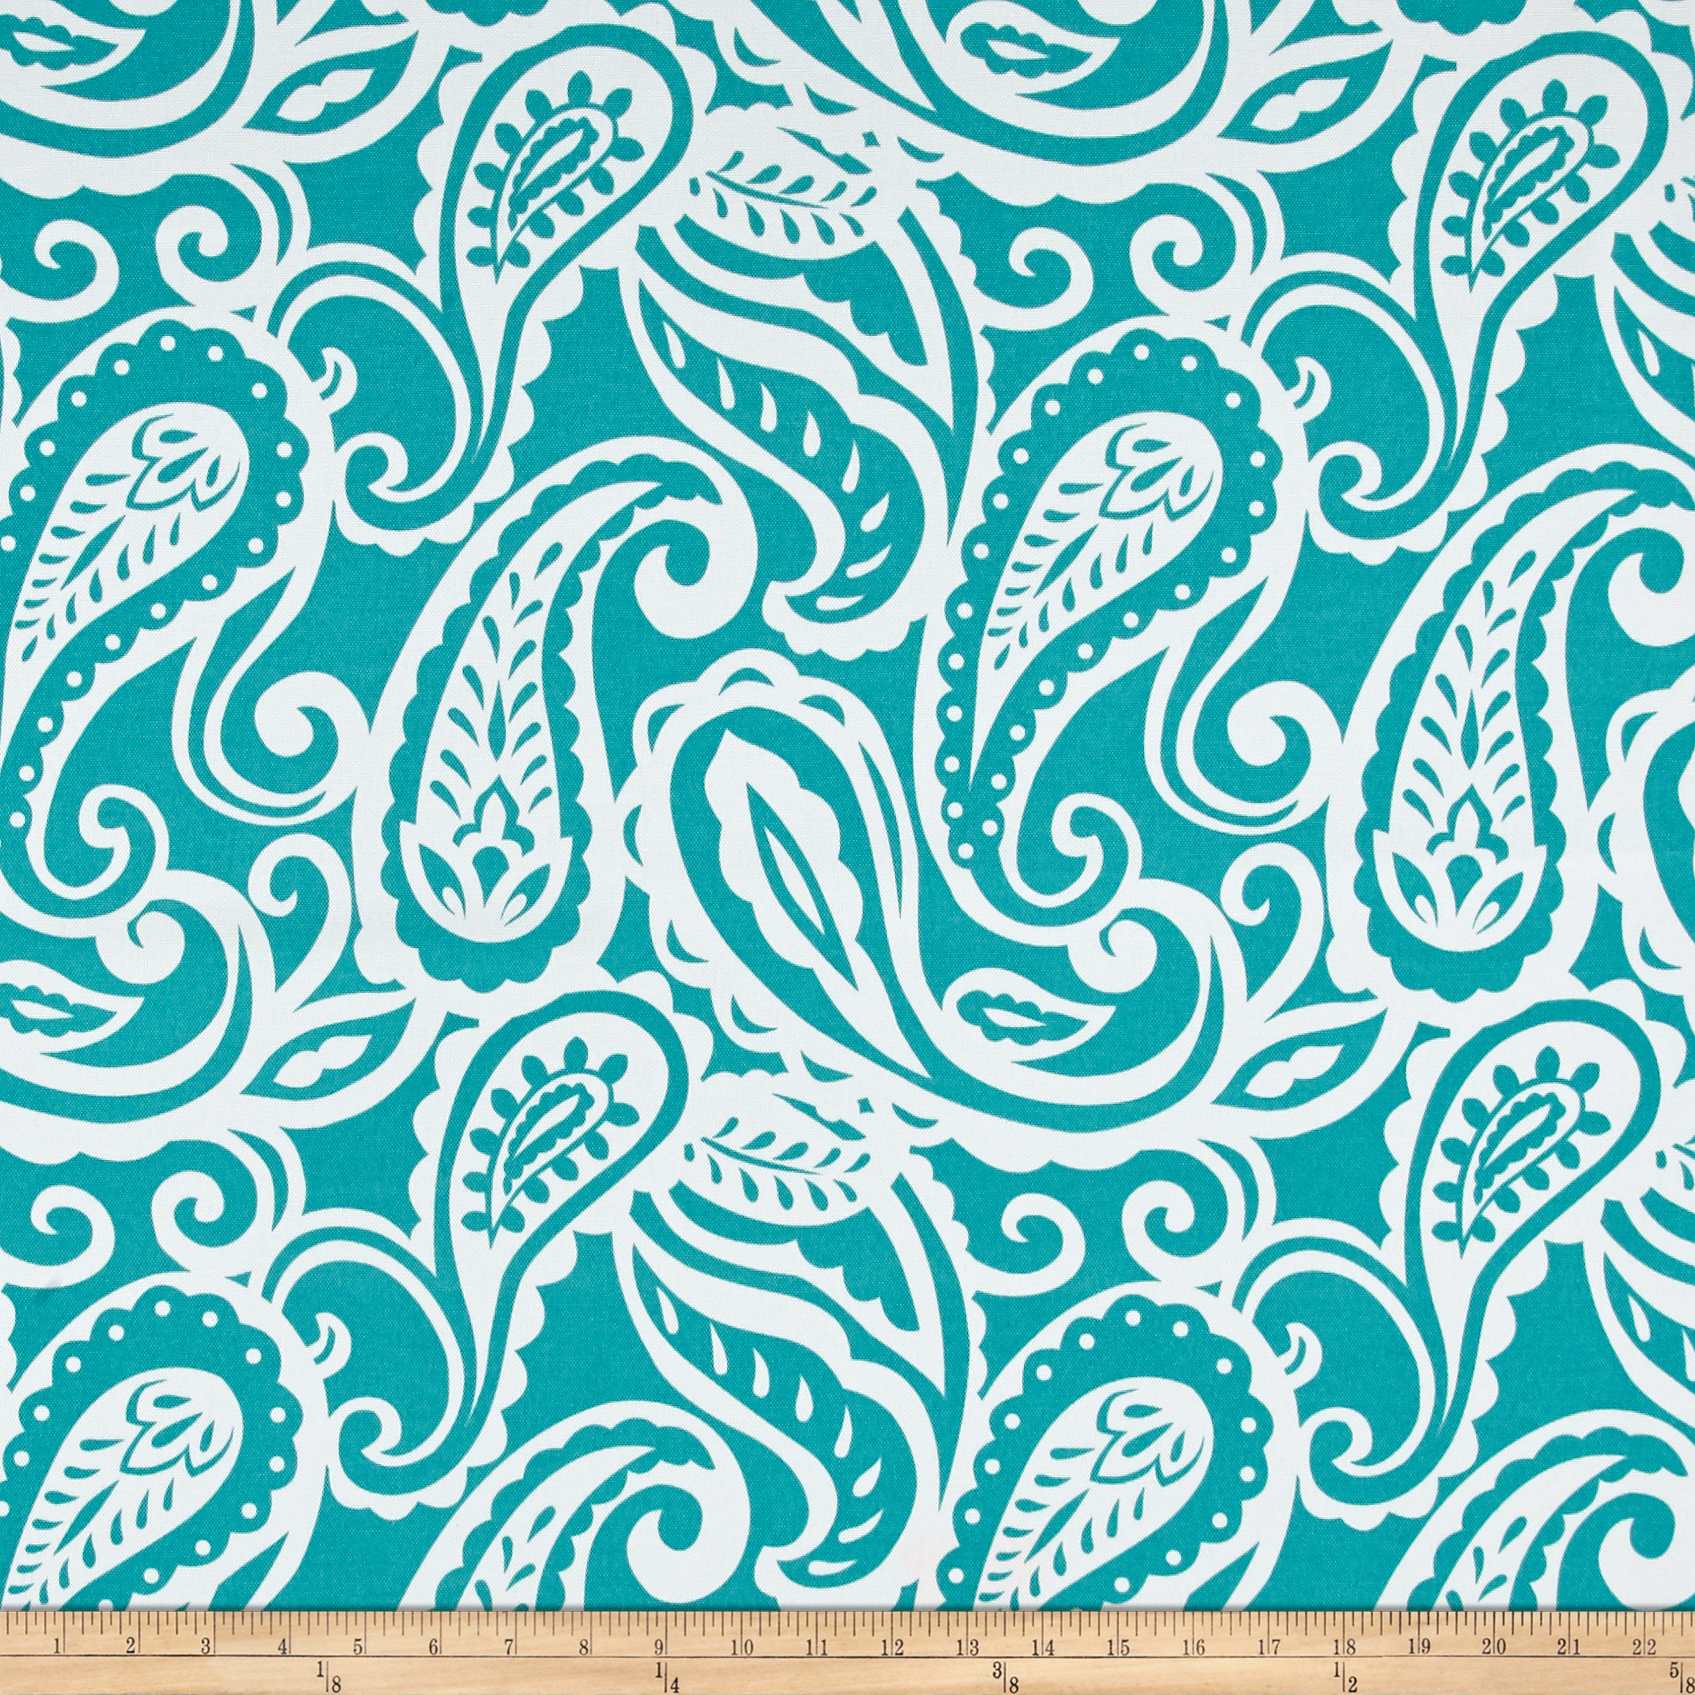 Terrasol Outdoor Sassafras Teal Fabric by Tempro in USA